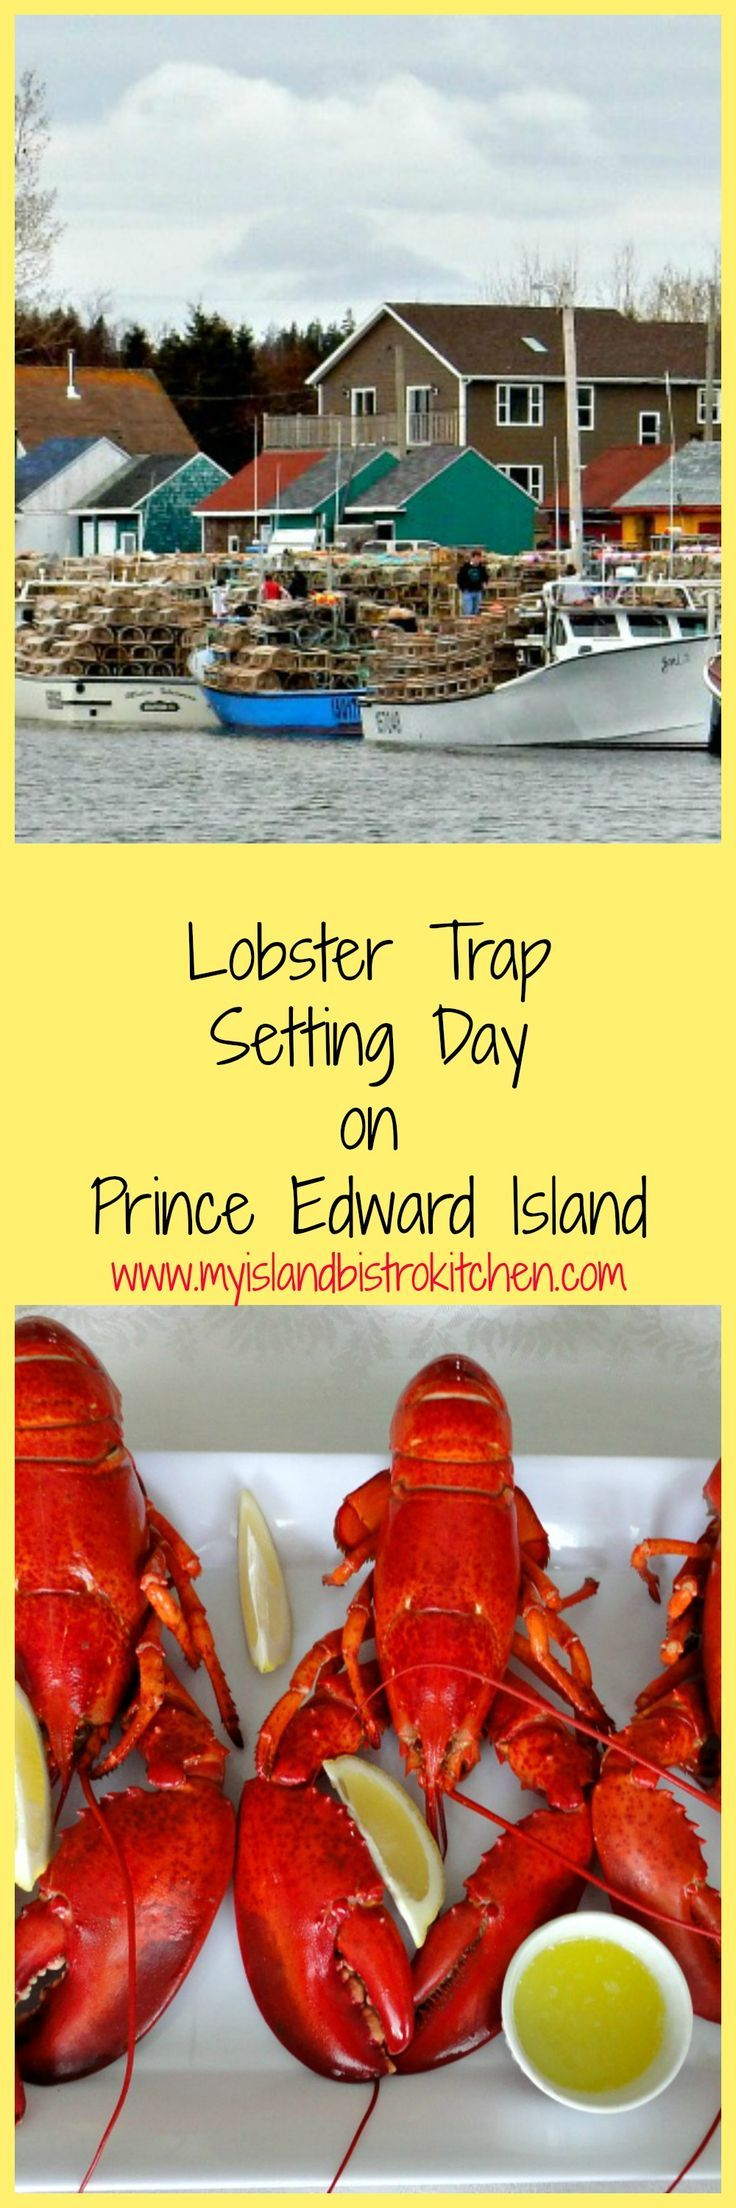 Setting Day heralds the opening of the lobster fishing season on PEI and signals that the first feed of the succulent lobster will follow shortly.